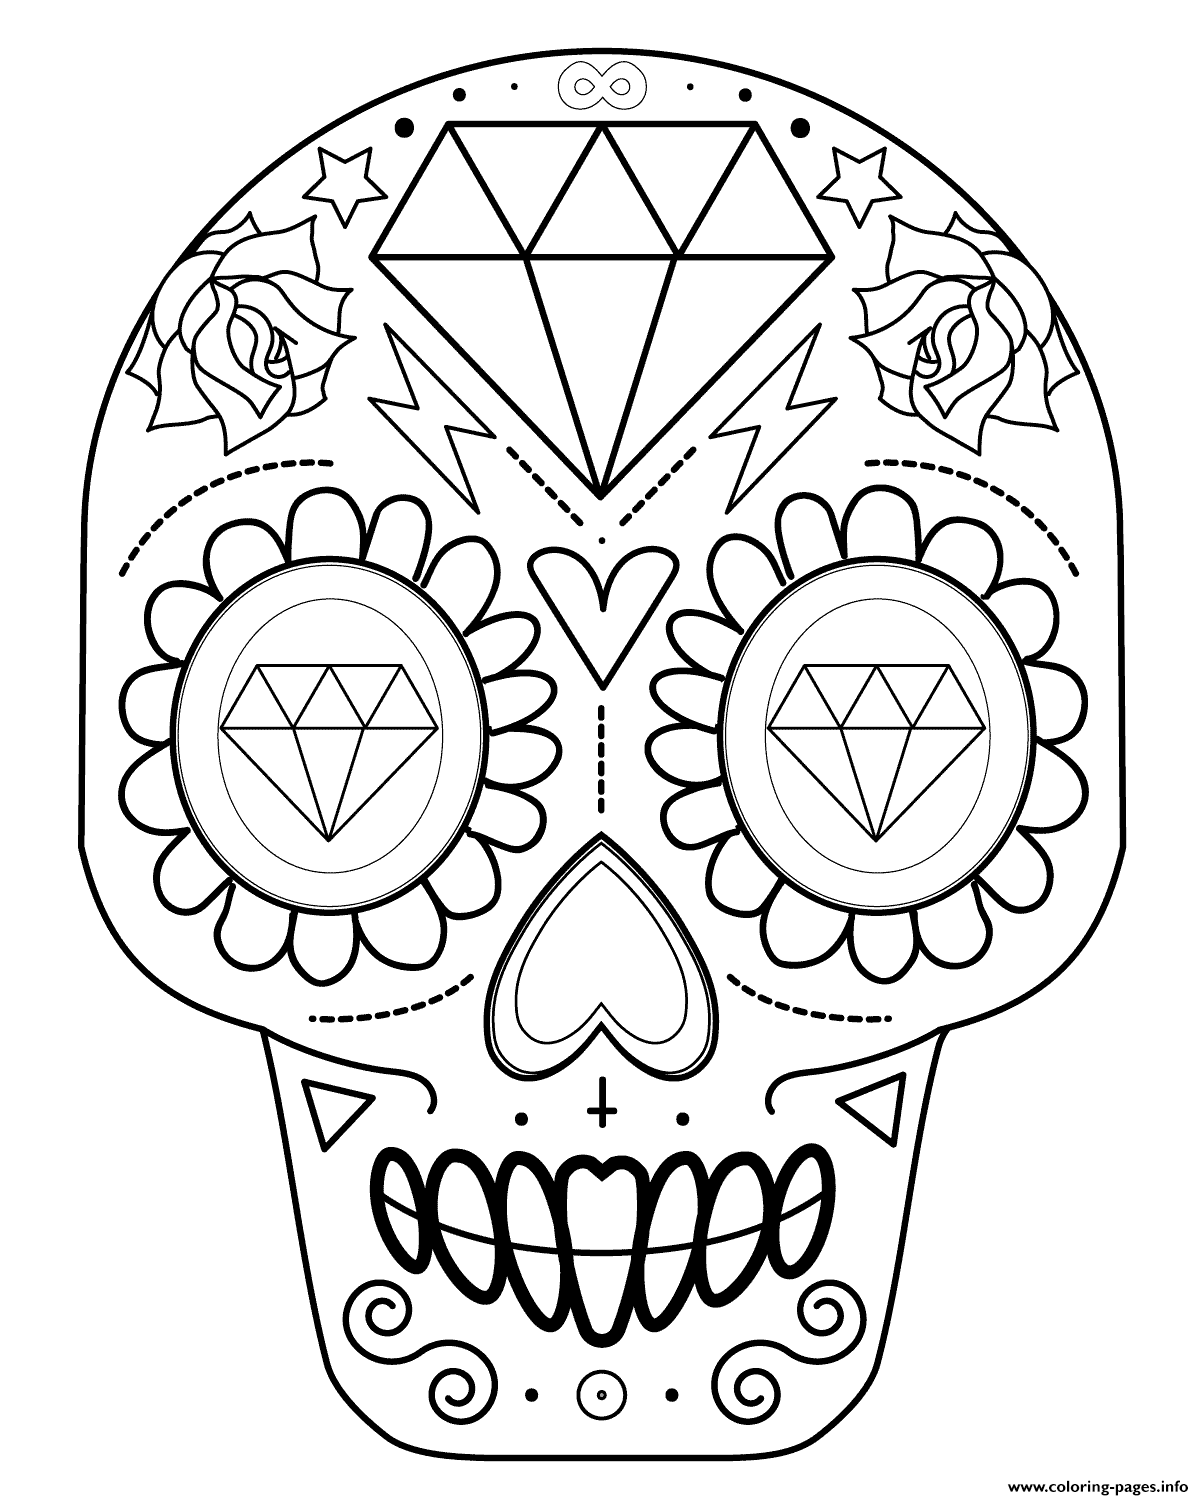 Sugar Skull With Diamonds Calavera coloring pages